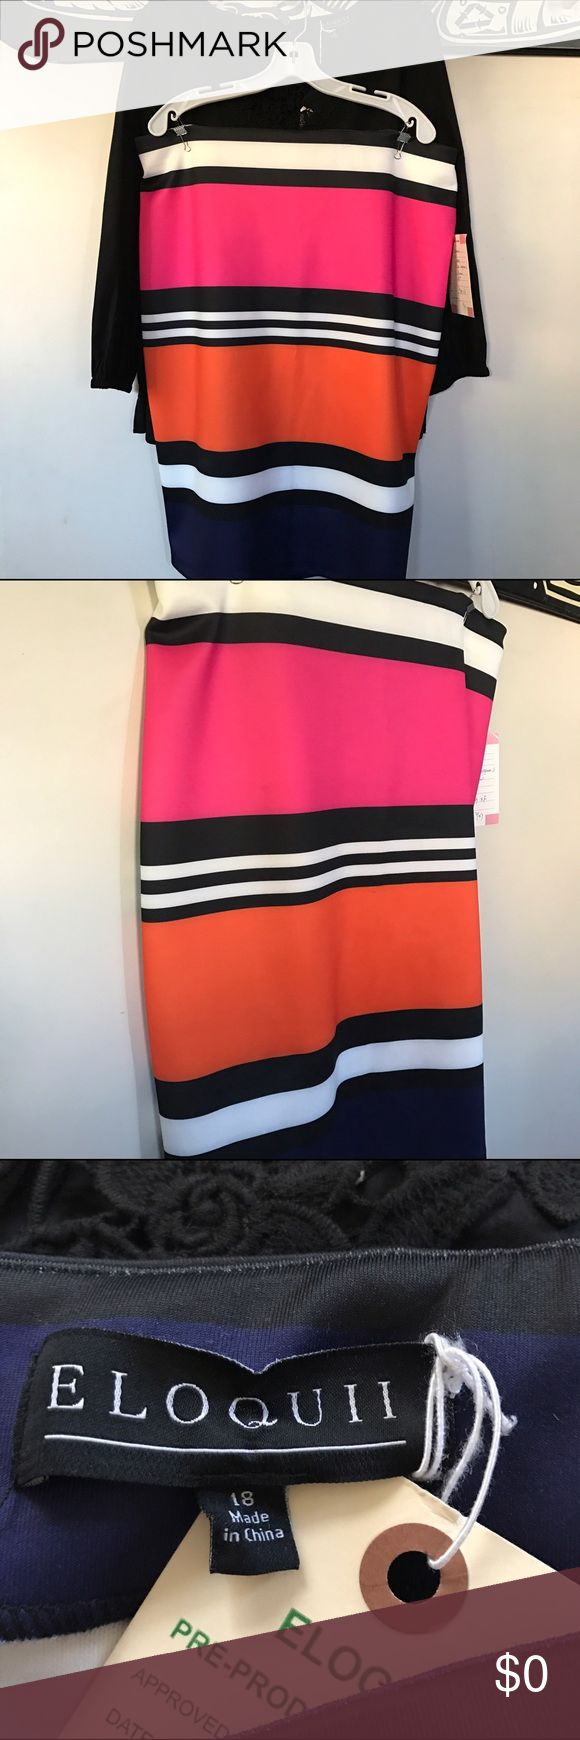 """Studio striped pencil skirt This is a production sample from Eloquii. *It came straight from the manufacturer so it does NOT have retail tags* Streamlined and sophisticated.  Inset elastic in waist seam. Invisible back zipper. Medium stretch scuba knit fabric. Each garment is unique - print placement may vary. Skirt Length: 26"""" 91% Polyester / 9% Spandex Machine wash cold on gentle cycle with like colors. Only non-chlorine bleach when needed. Tumble dry low. Cool iron as needed. Import…"""